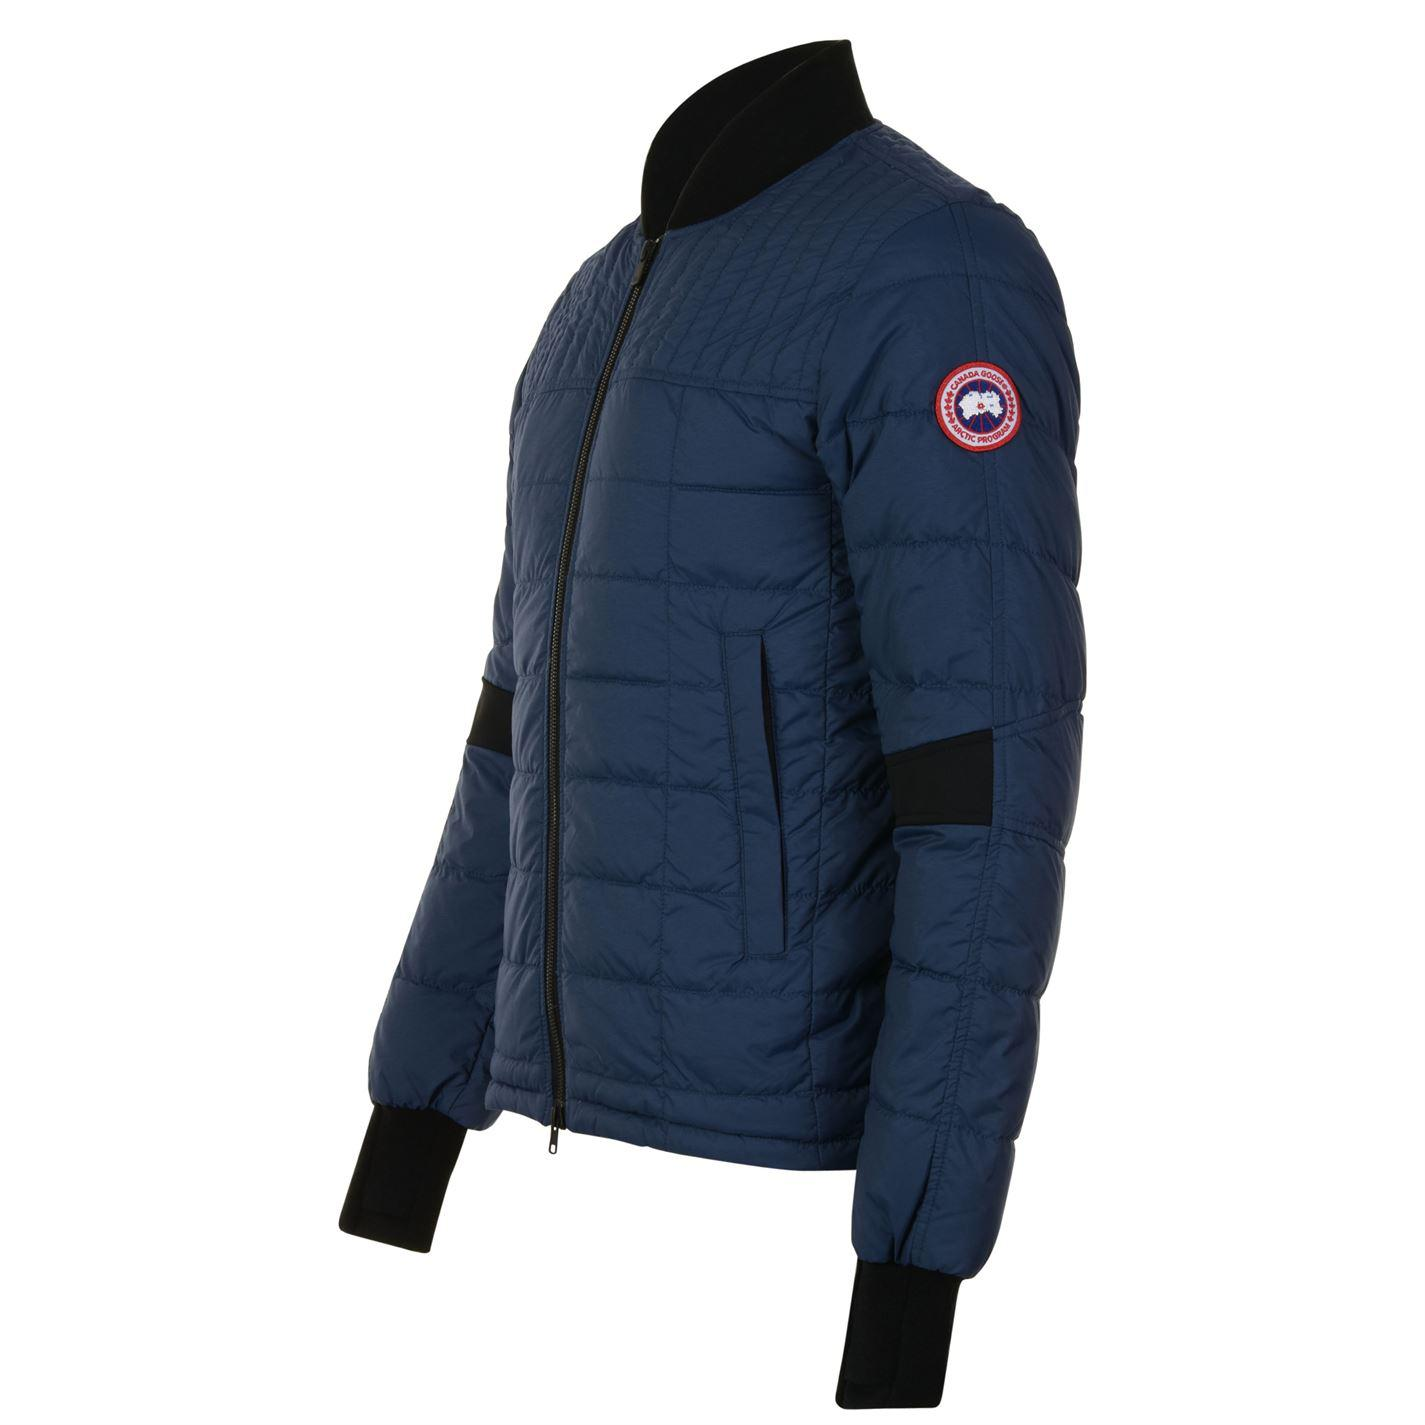 Canada Goose - Blue Dunham Bomber Jacket for Men - Lyst. View fullscreen